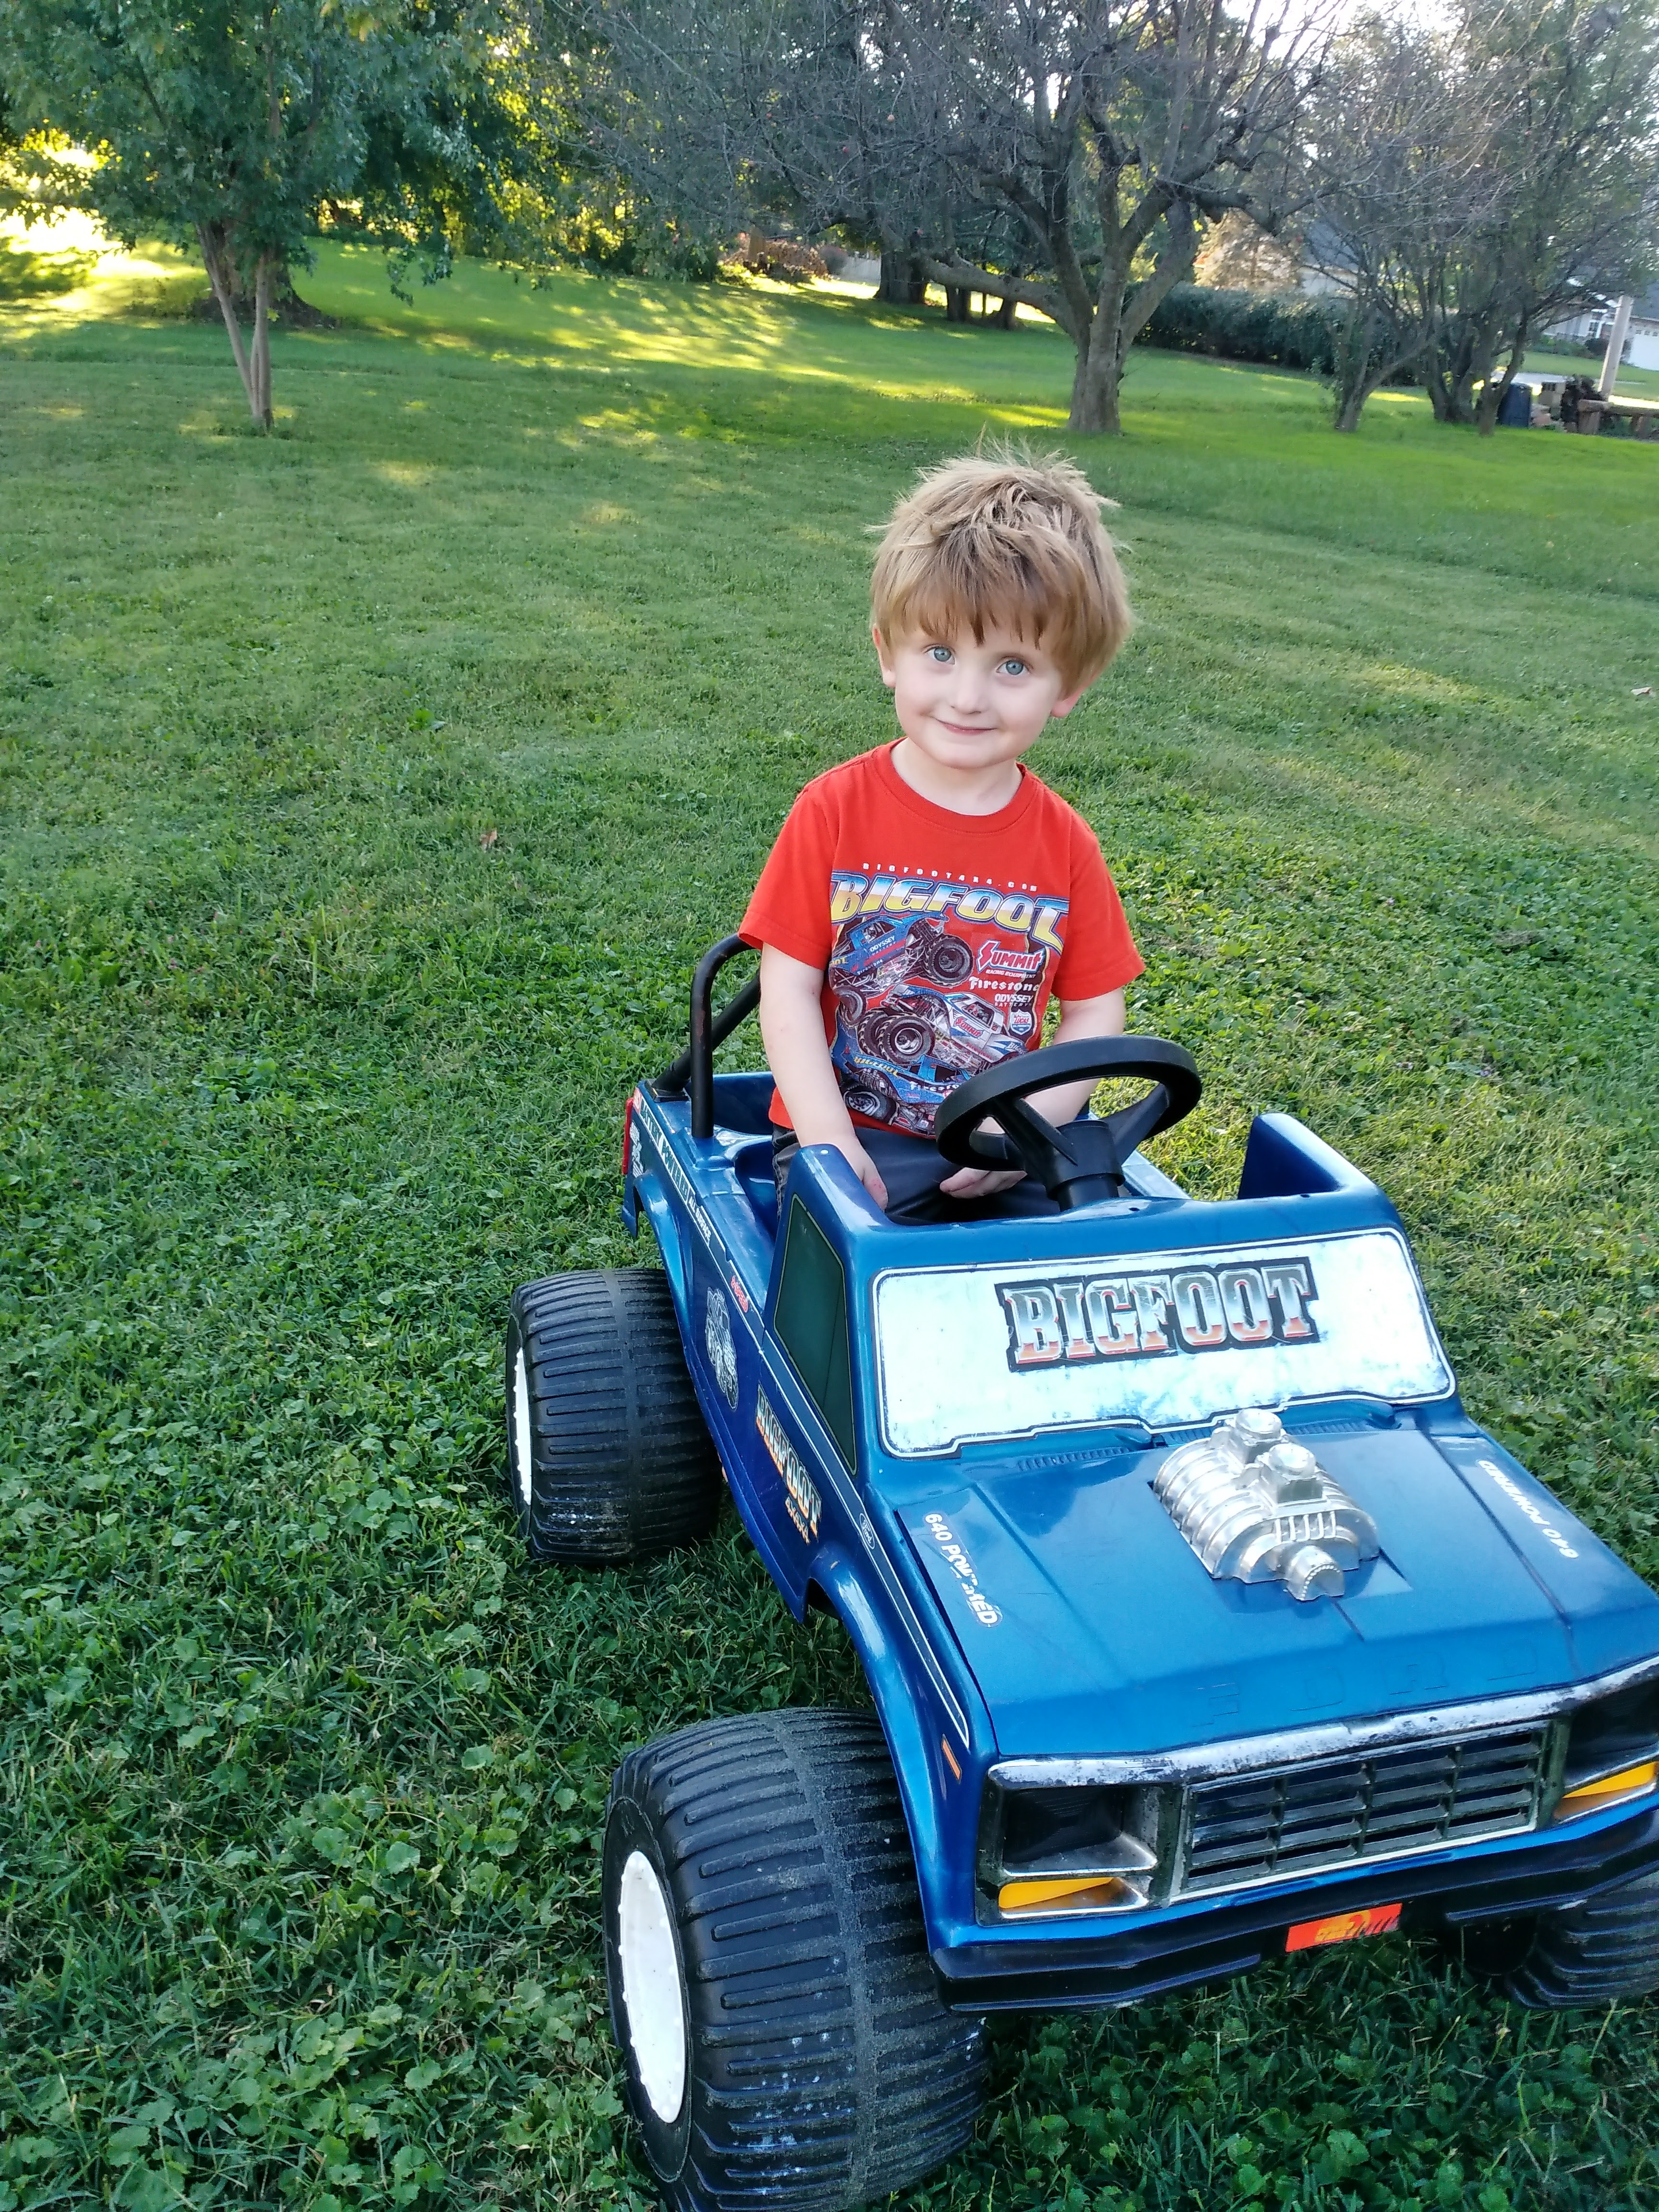 Converting 6v Power Wheels to 12v With Dual Gearboxes: 5 Steps